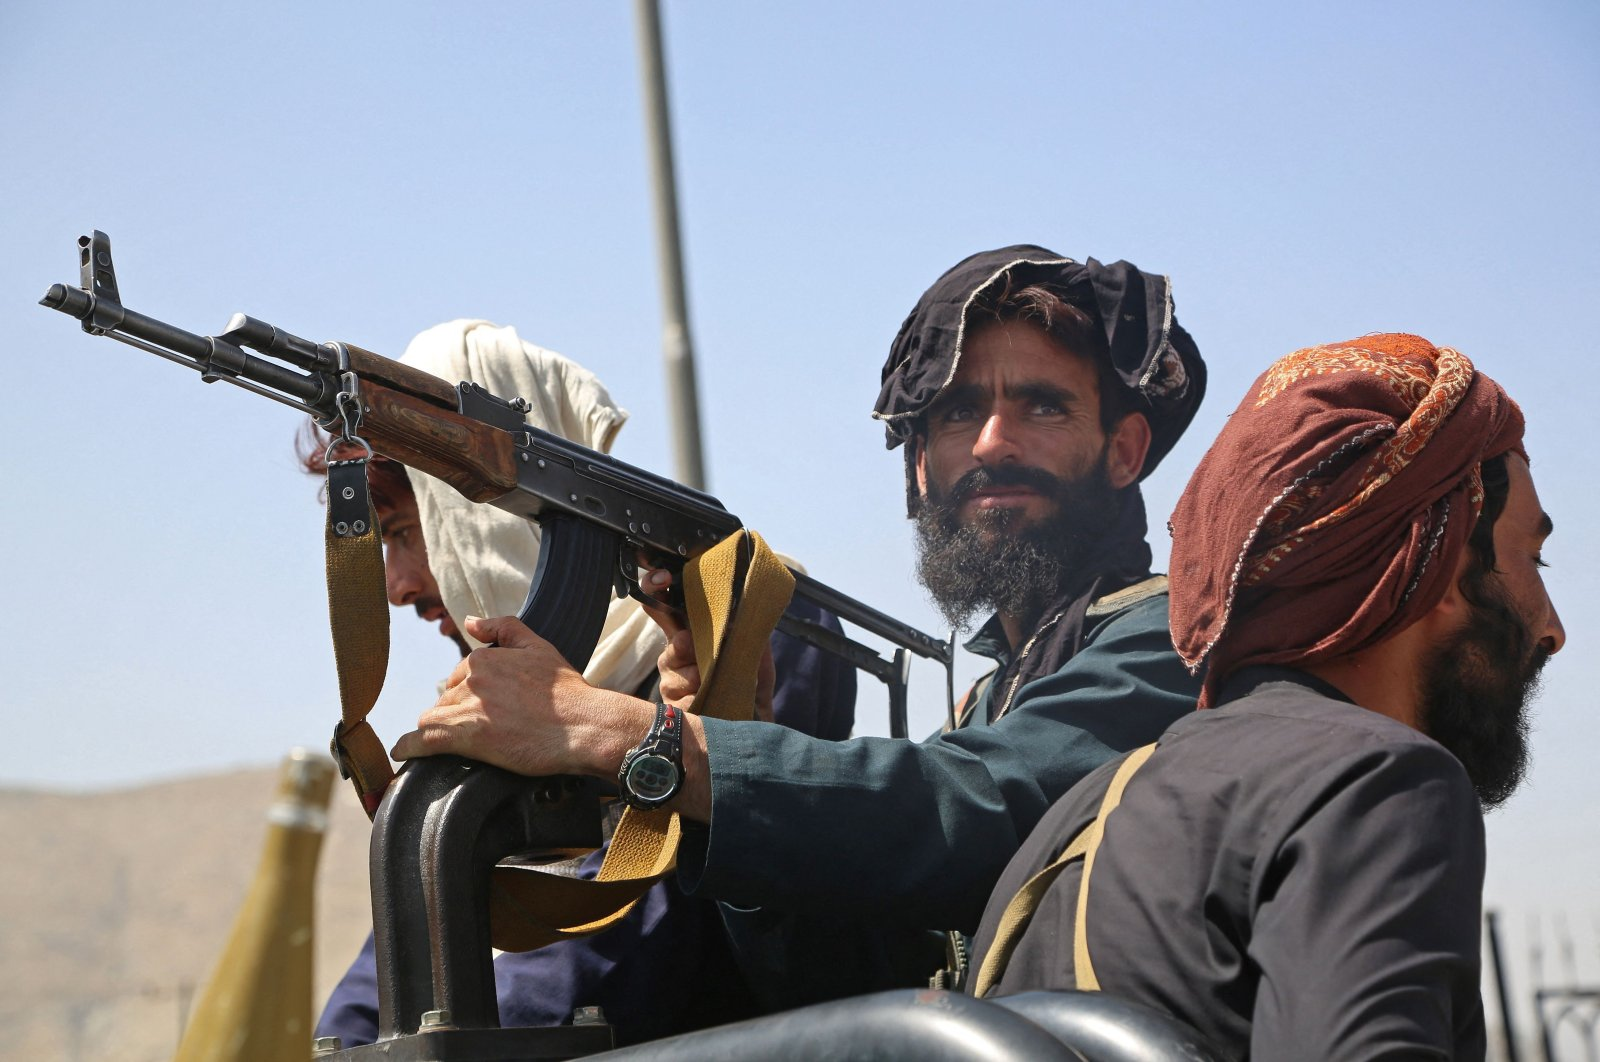 Taliban fighters stand guard in a vehicle along the roadside after a stunningly swift end to Afghanistan's 20-year war, as thousands of people mobbed the city's airport trying to flee the group's feared hardline brand of rule, Kabul, Afghanistan, Aug. 16, 2021. (AFP Photo)